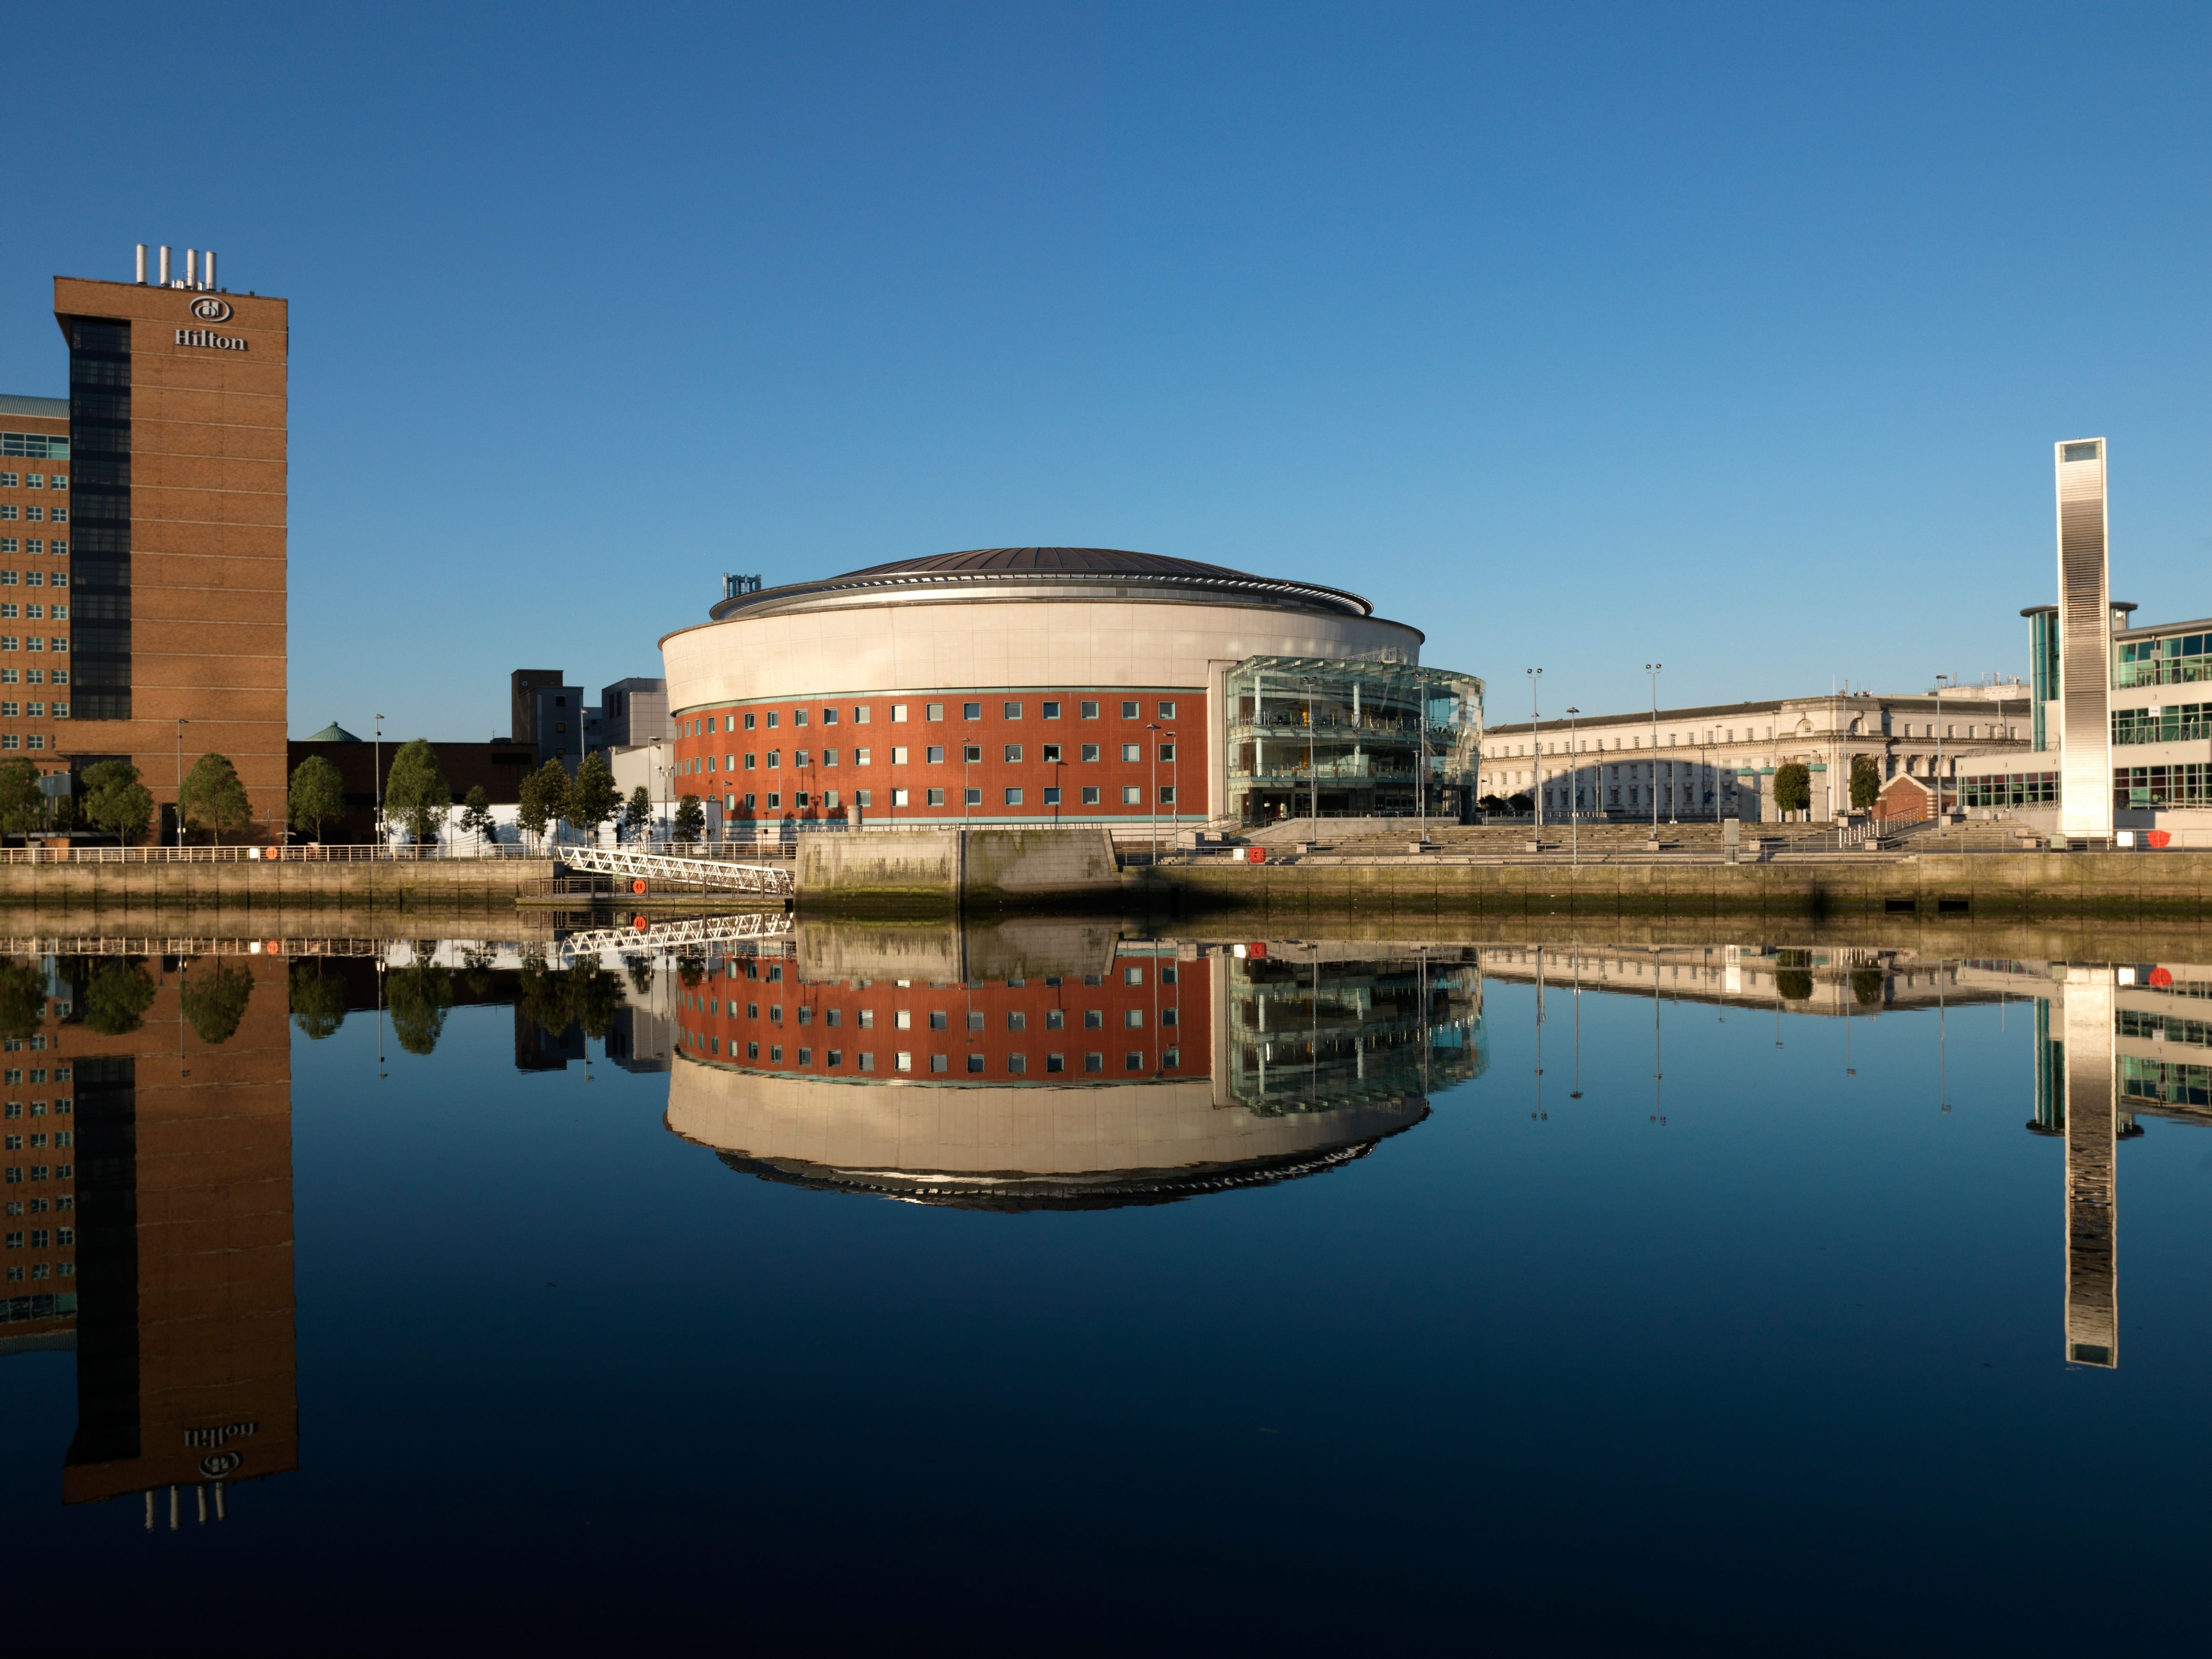 Sitting on the banks of the Lagan River in Belfast, the Waterfront Hall is a landmark of the city and ranks as one of the world's leading conference venues, hosting a huge array of events from concerts and shows to exhibitions and competitions.